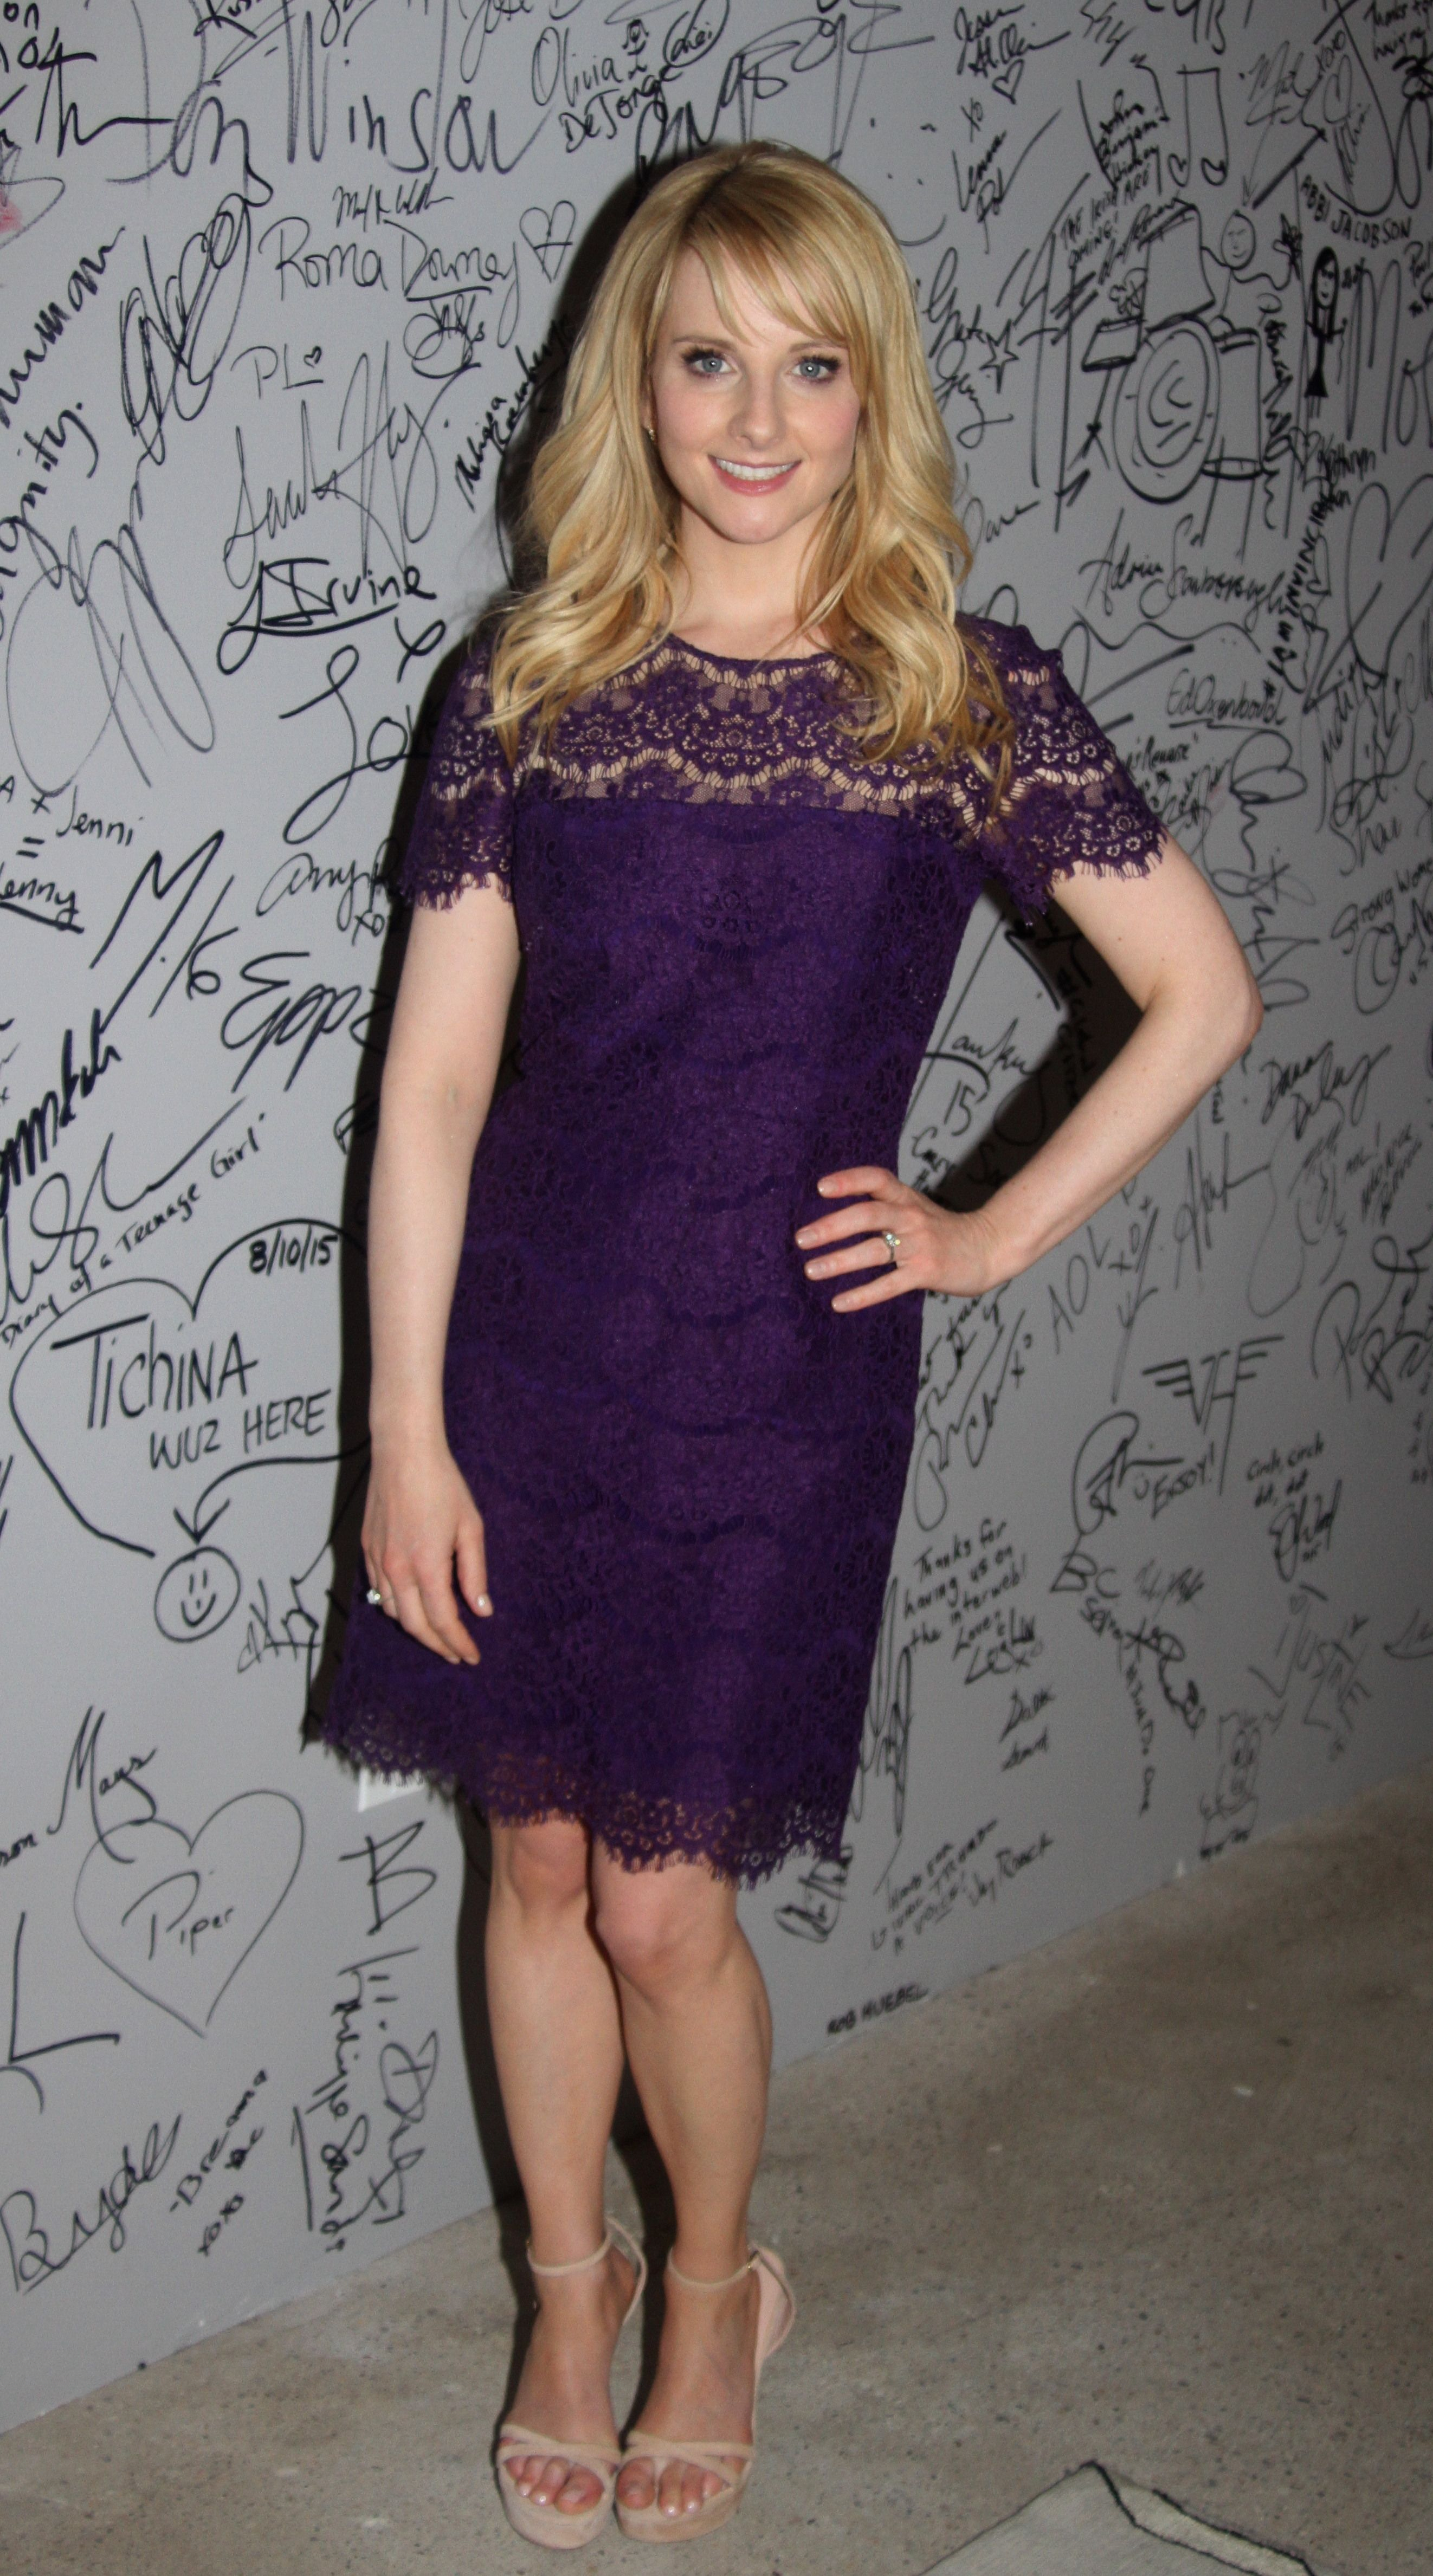 Feet Melissa Rauch naked (85 foto and video), Pussy, Leaked, Instagram, butt 2020